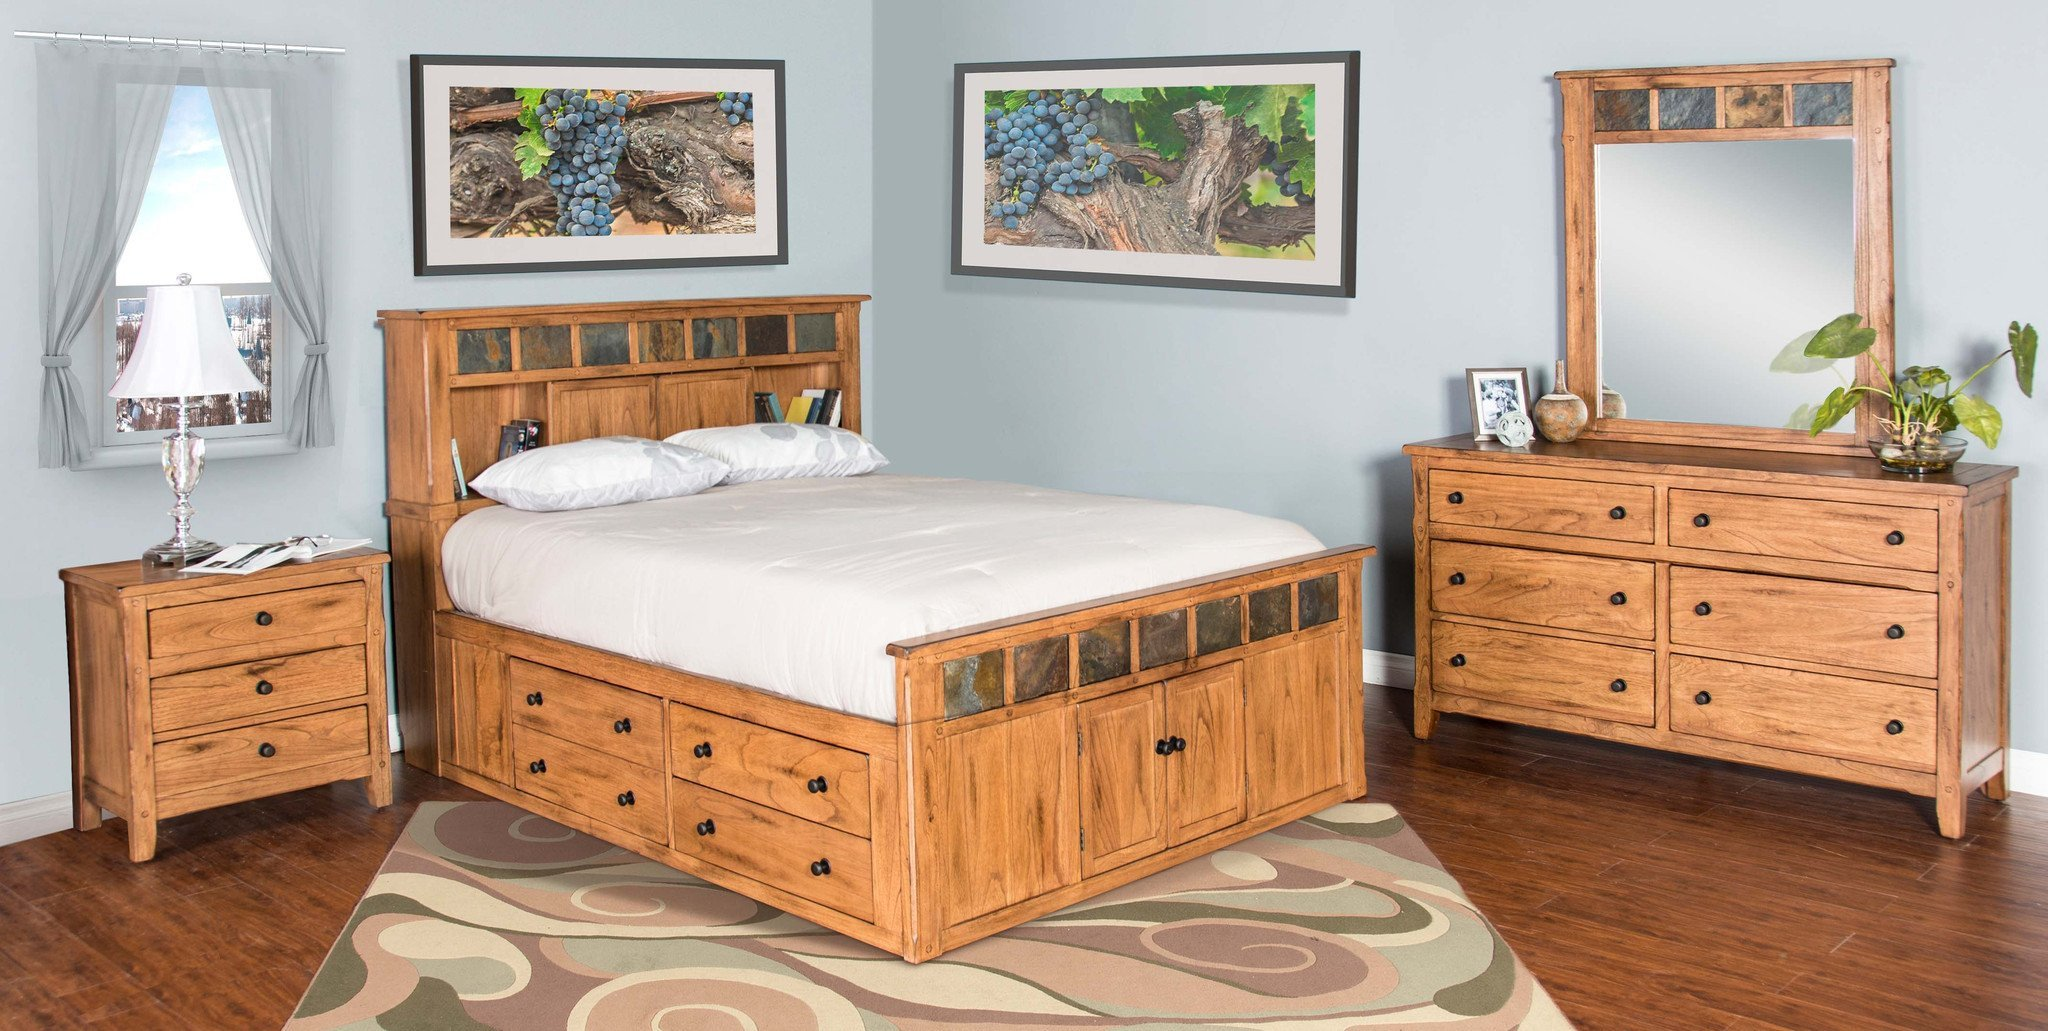 King Size Bedroom Set with Mattress Elegant Sedona Rustic Petite Storage Bedroom Suite E King Size